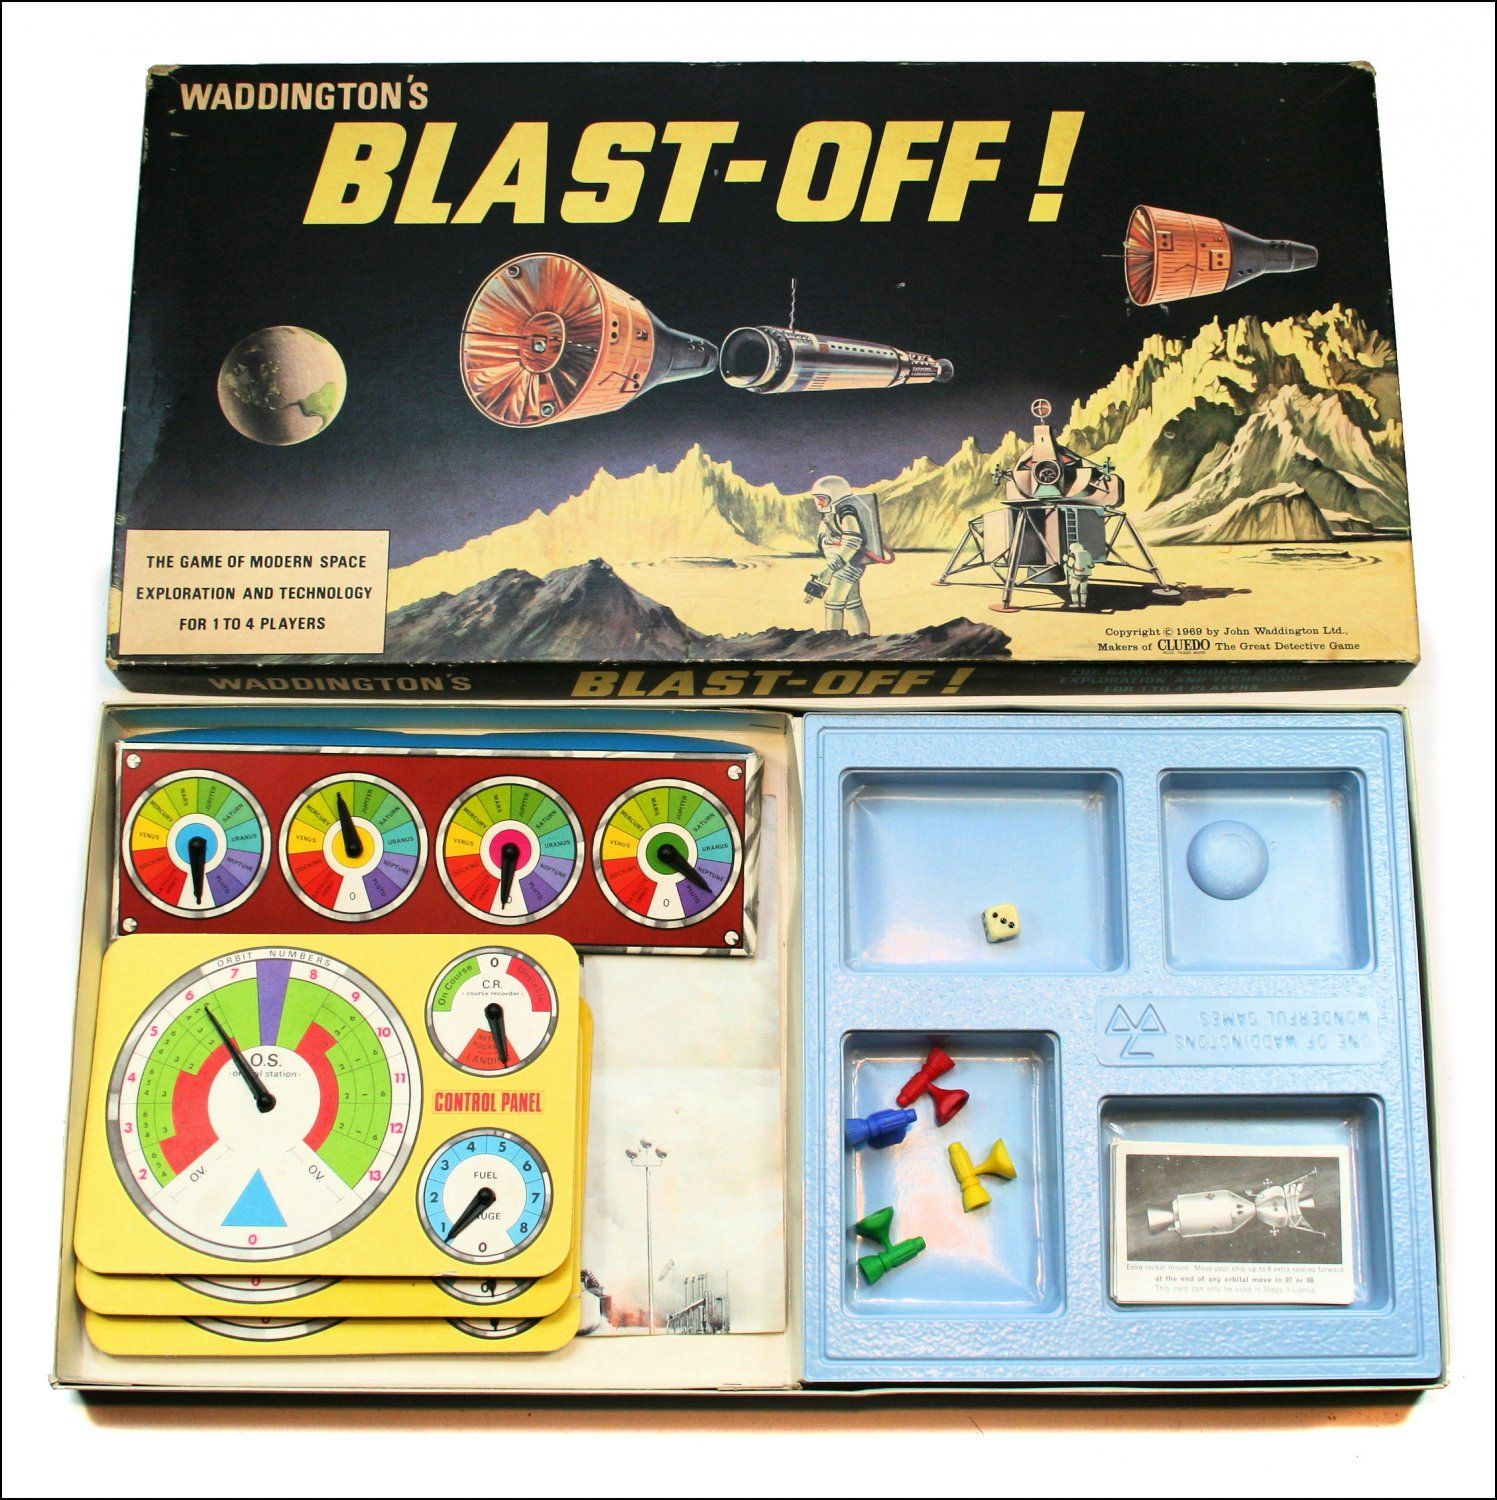 Another cool vintage board game only available at an